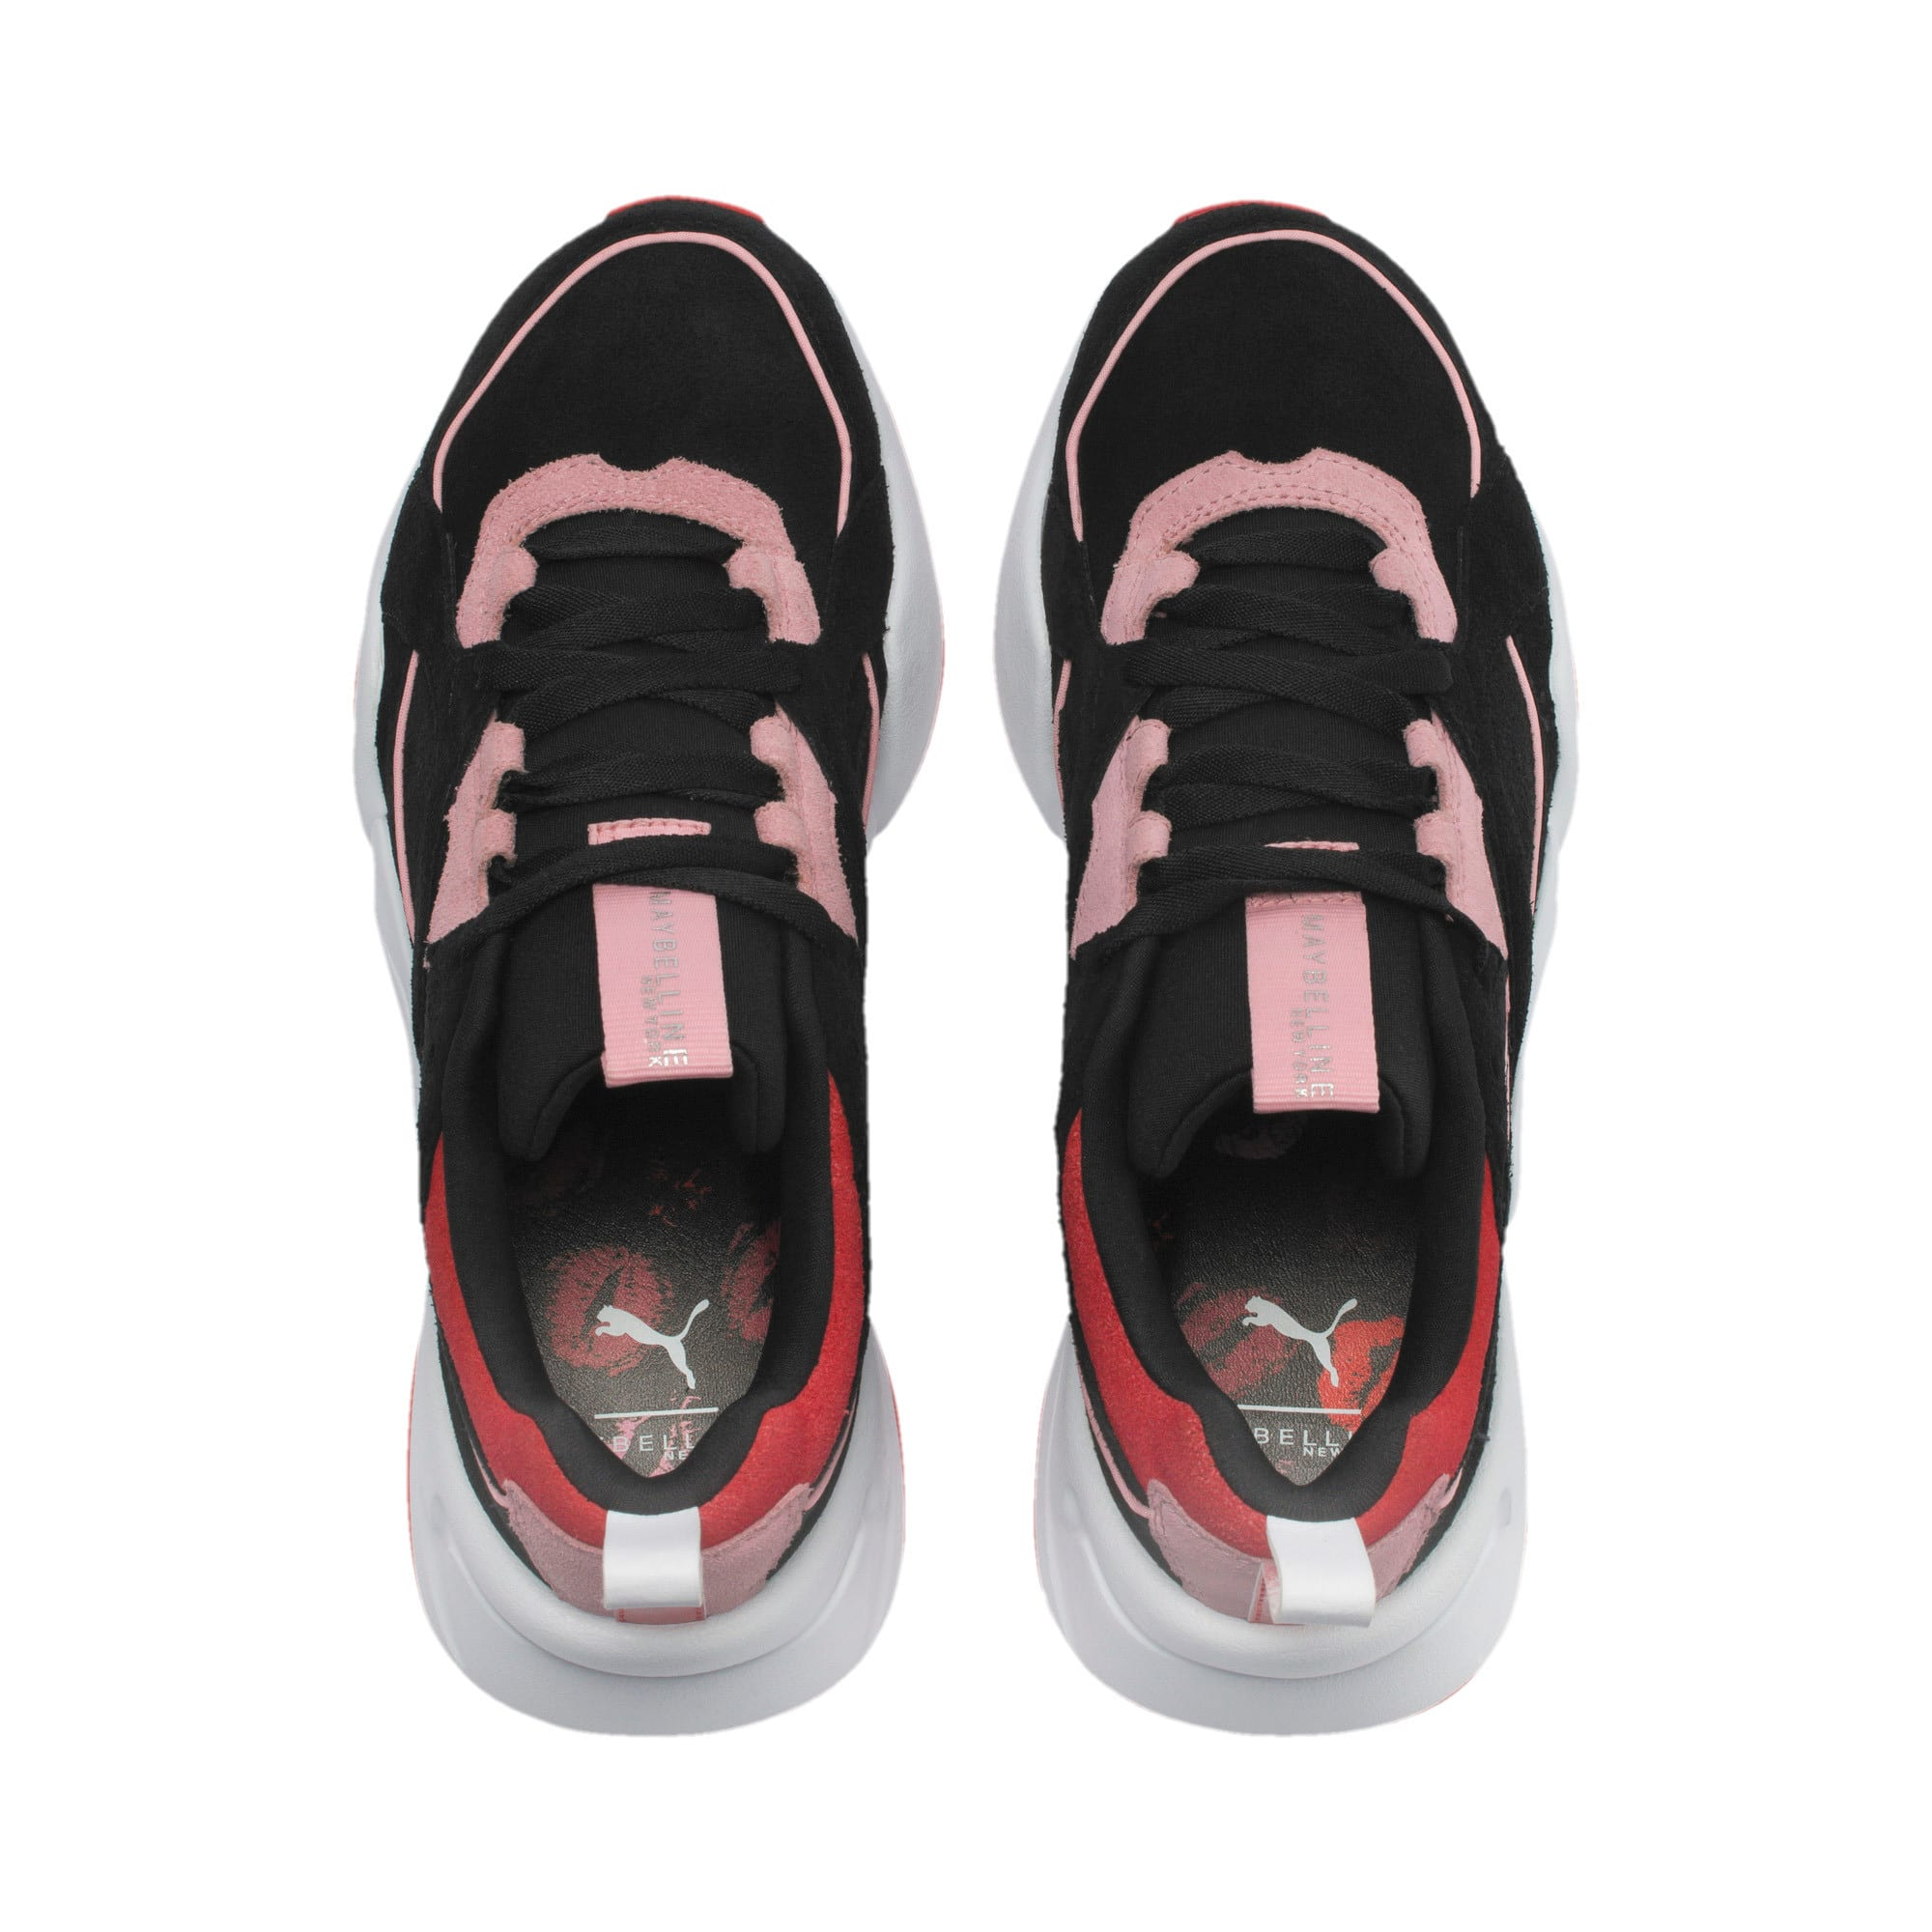 Thumbnail 6 of PUMA x MAYBELLINE Nova Women's Trainers, Puma Black-Candy Pink, medium